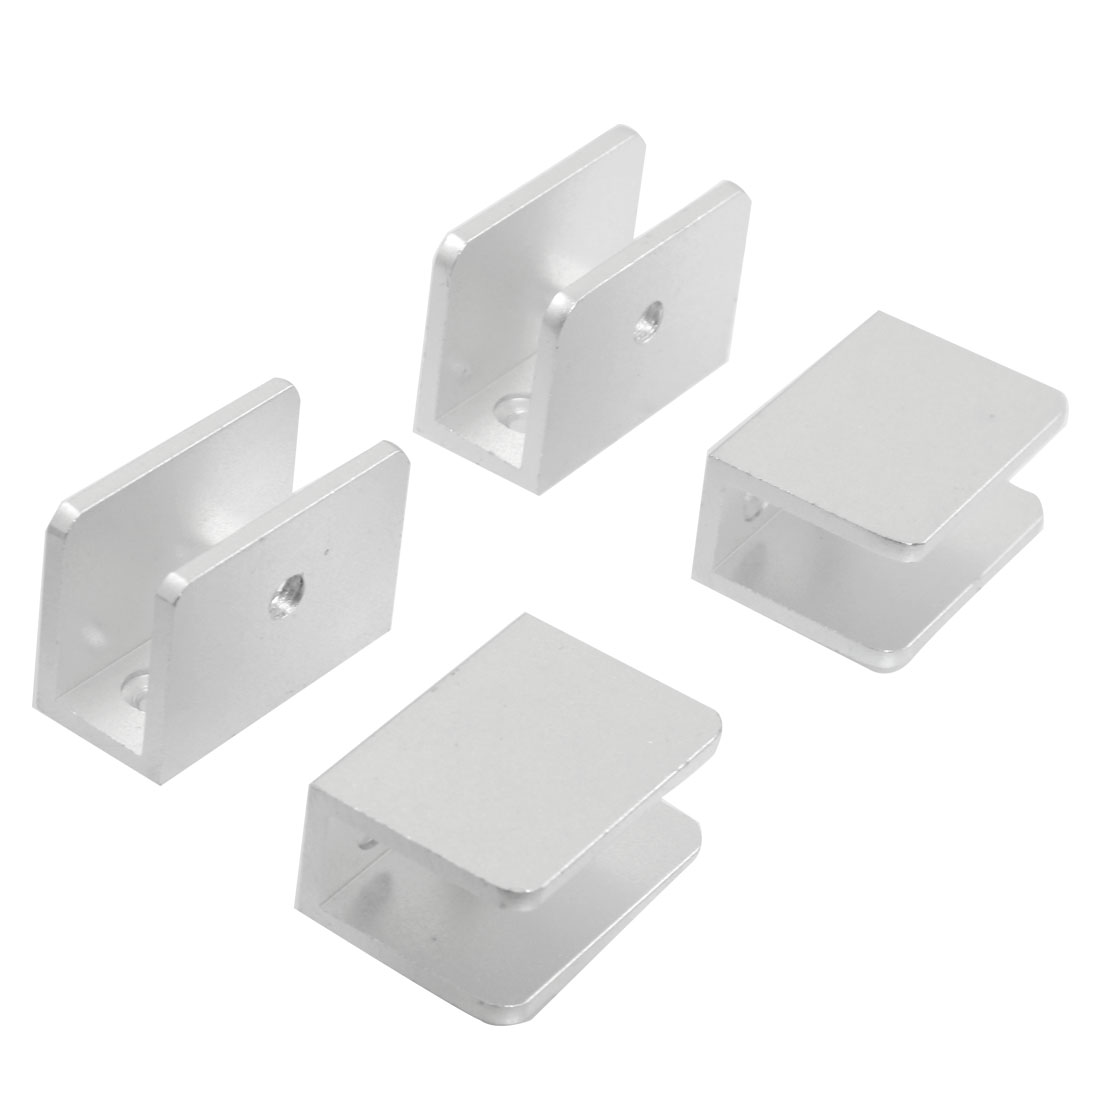 Wall Mount 10-12mm Thick Glass Metal Clip Clamp Silver Tone 4 Pcs